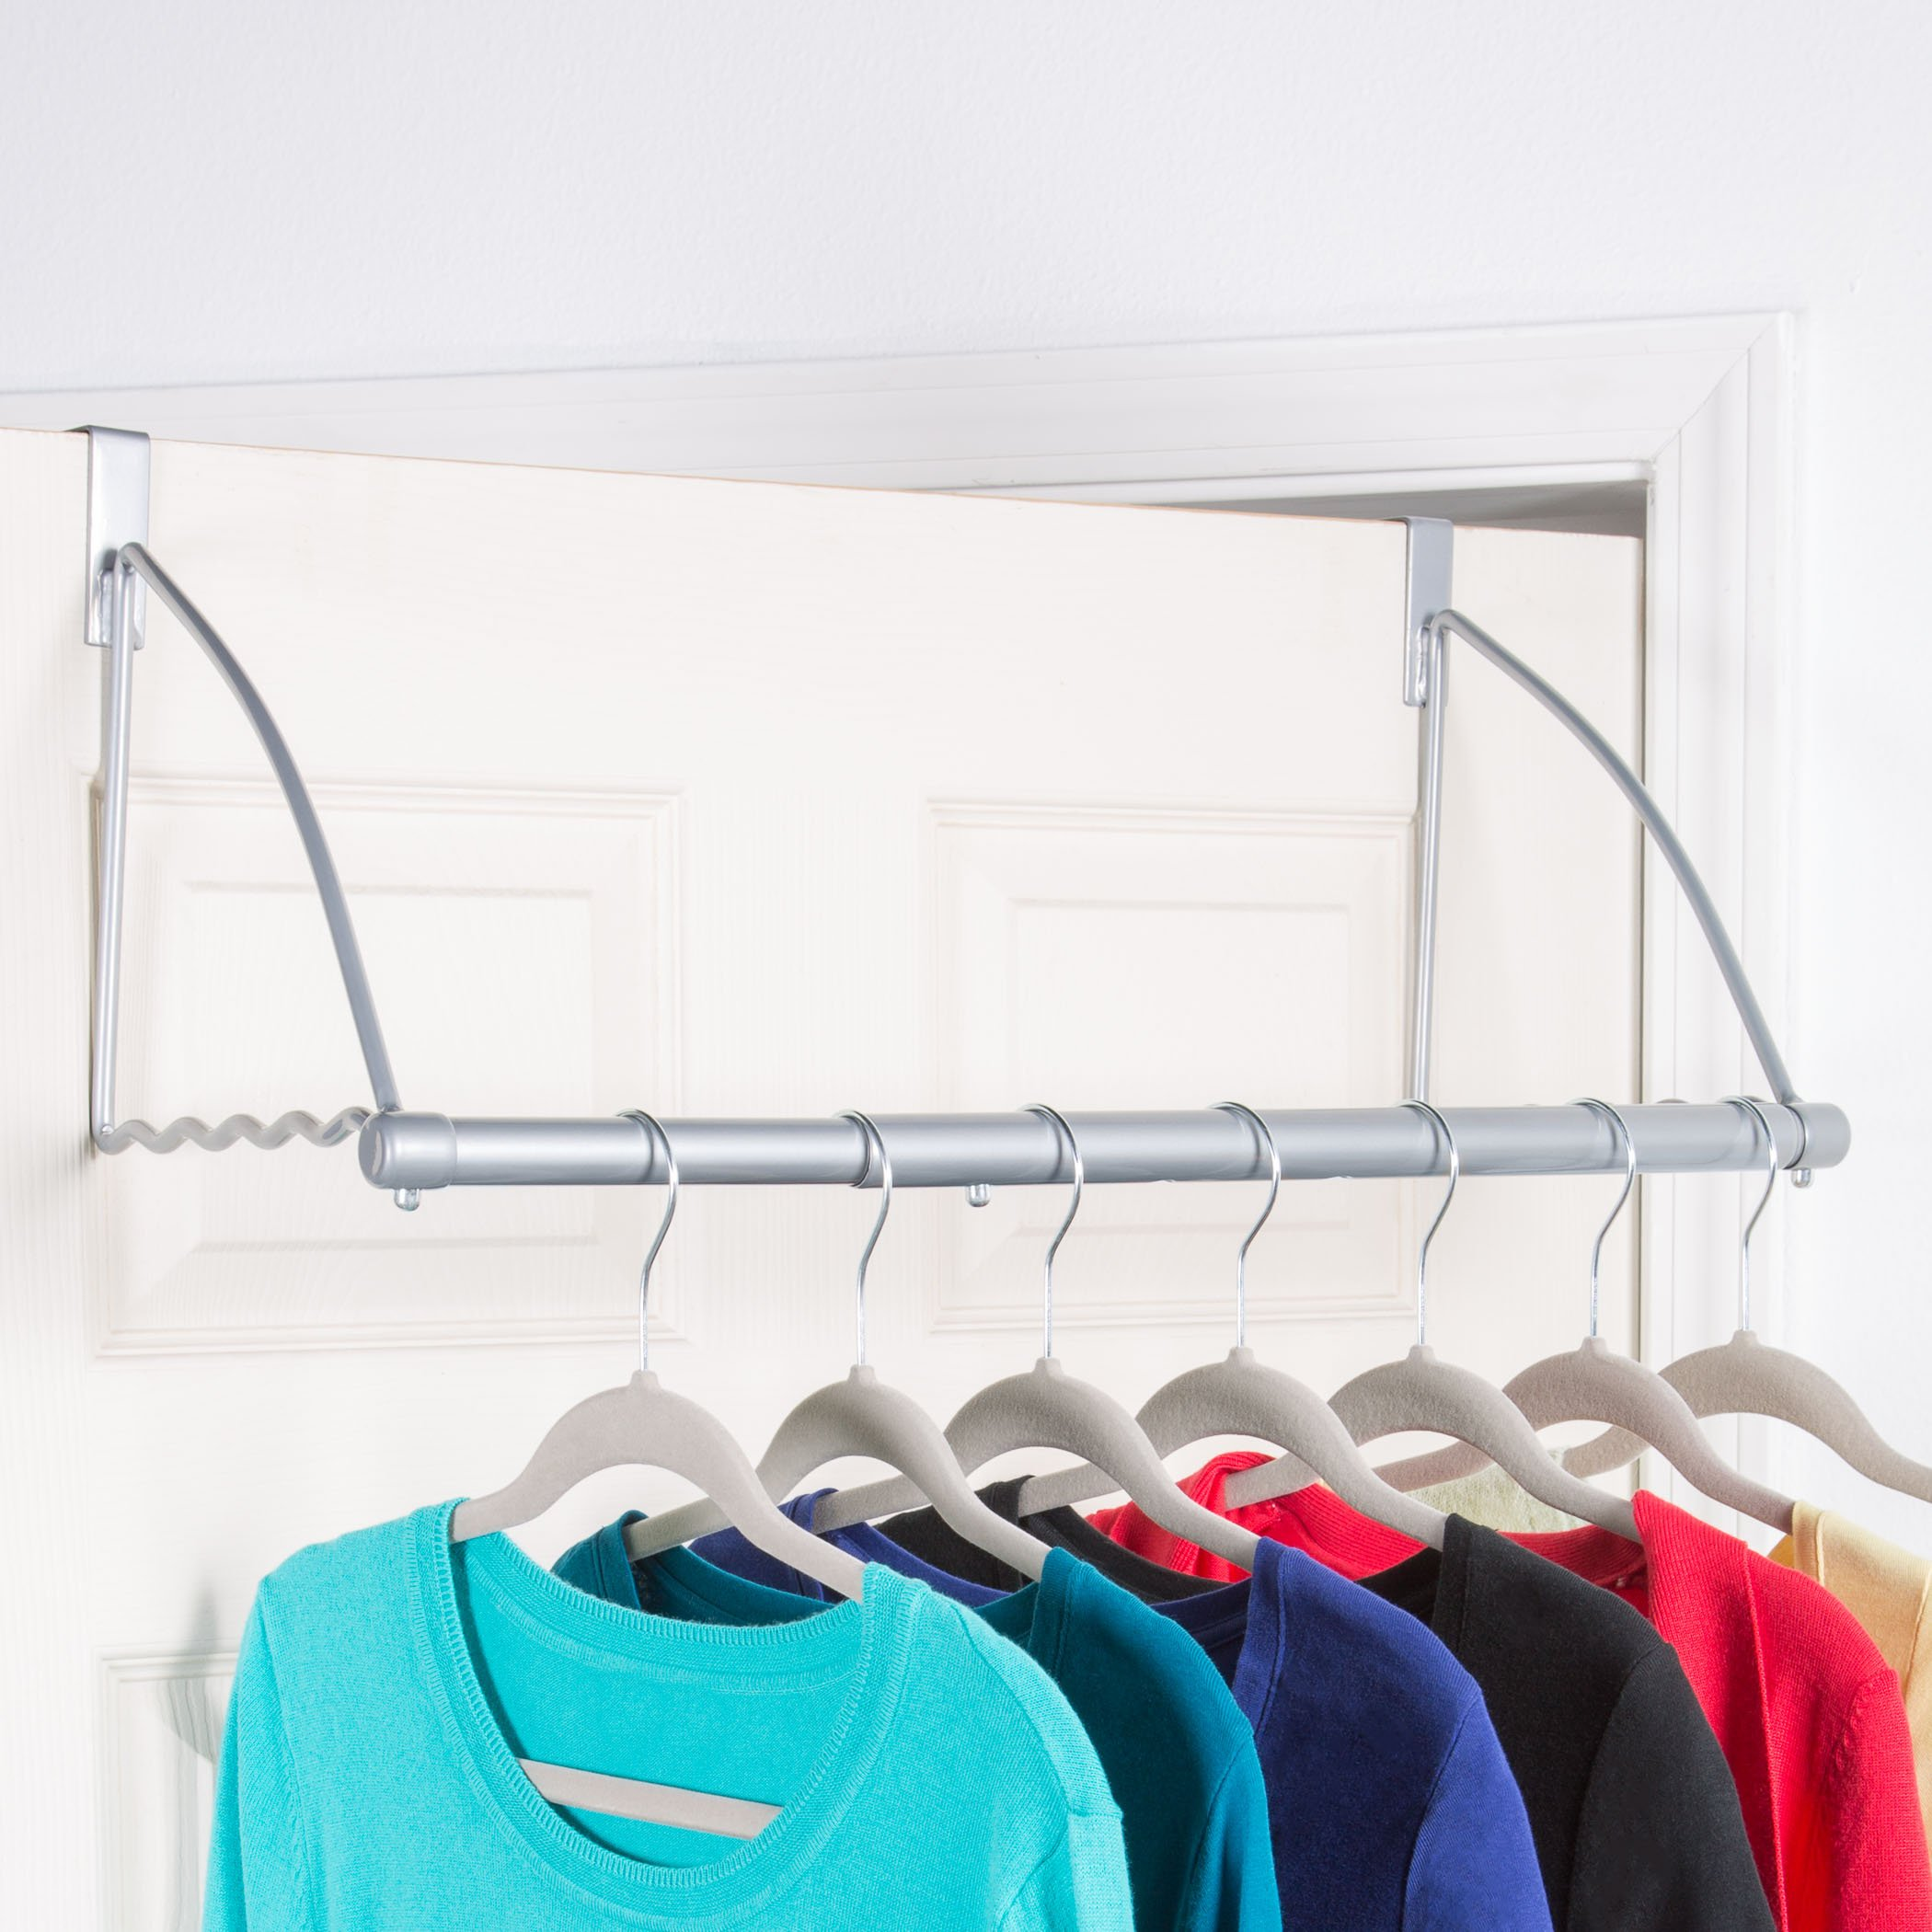 Hold N Storage Over the Door Closet Valet- Over the Door Clothes Organizer Rack and Door Hanger for Clothing or Towel, Home and Dorm Room Storage and Organization